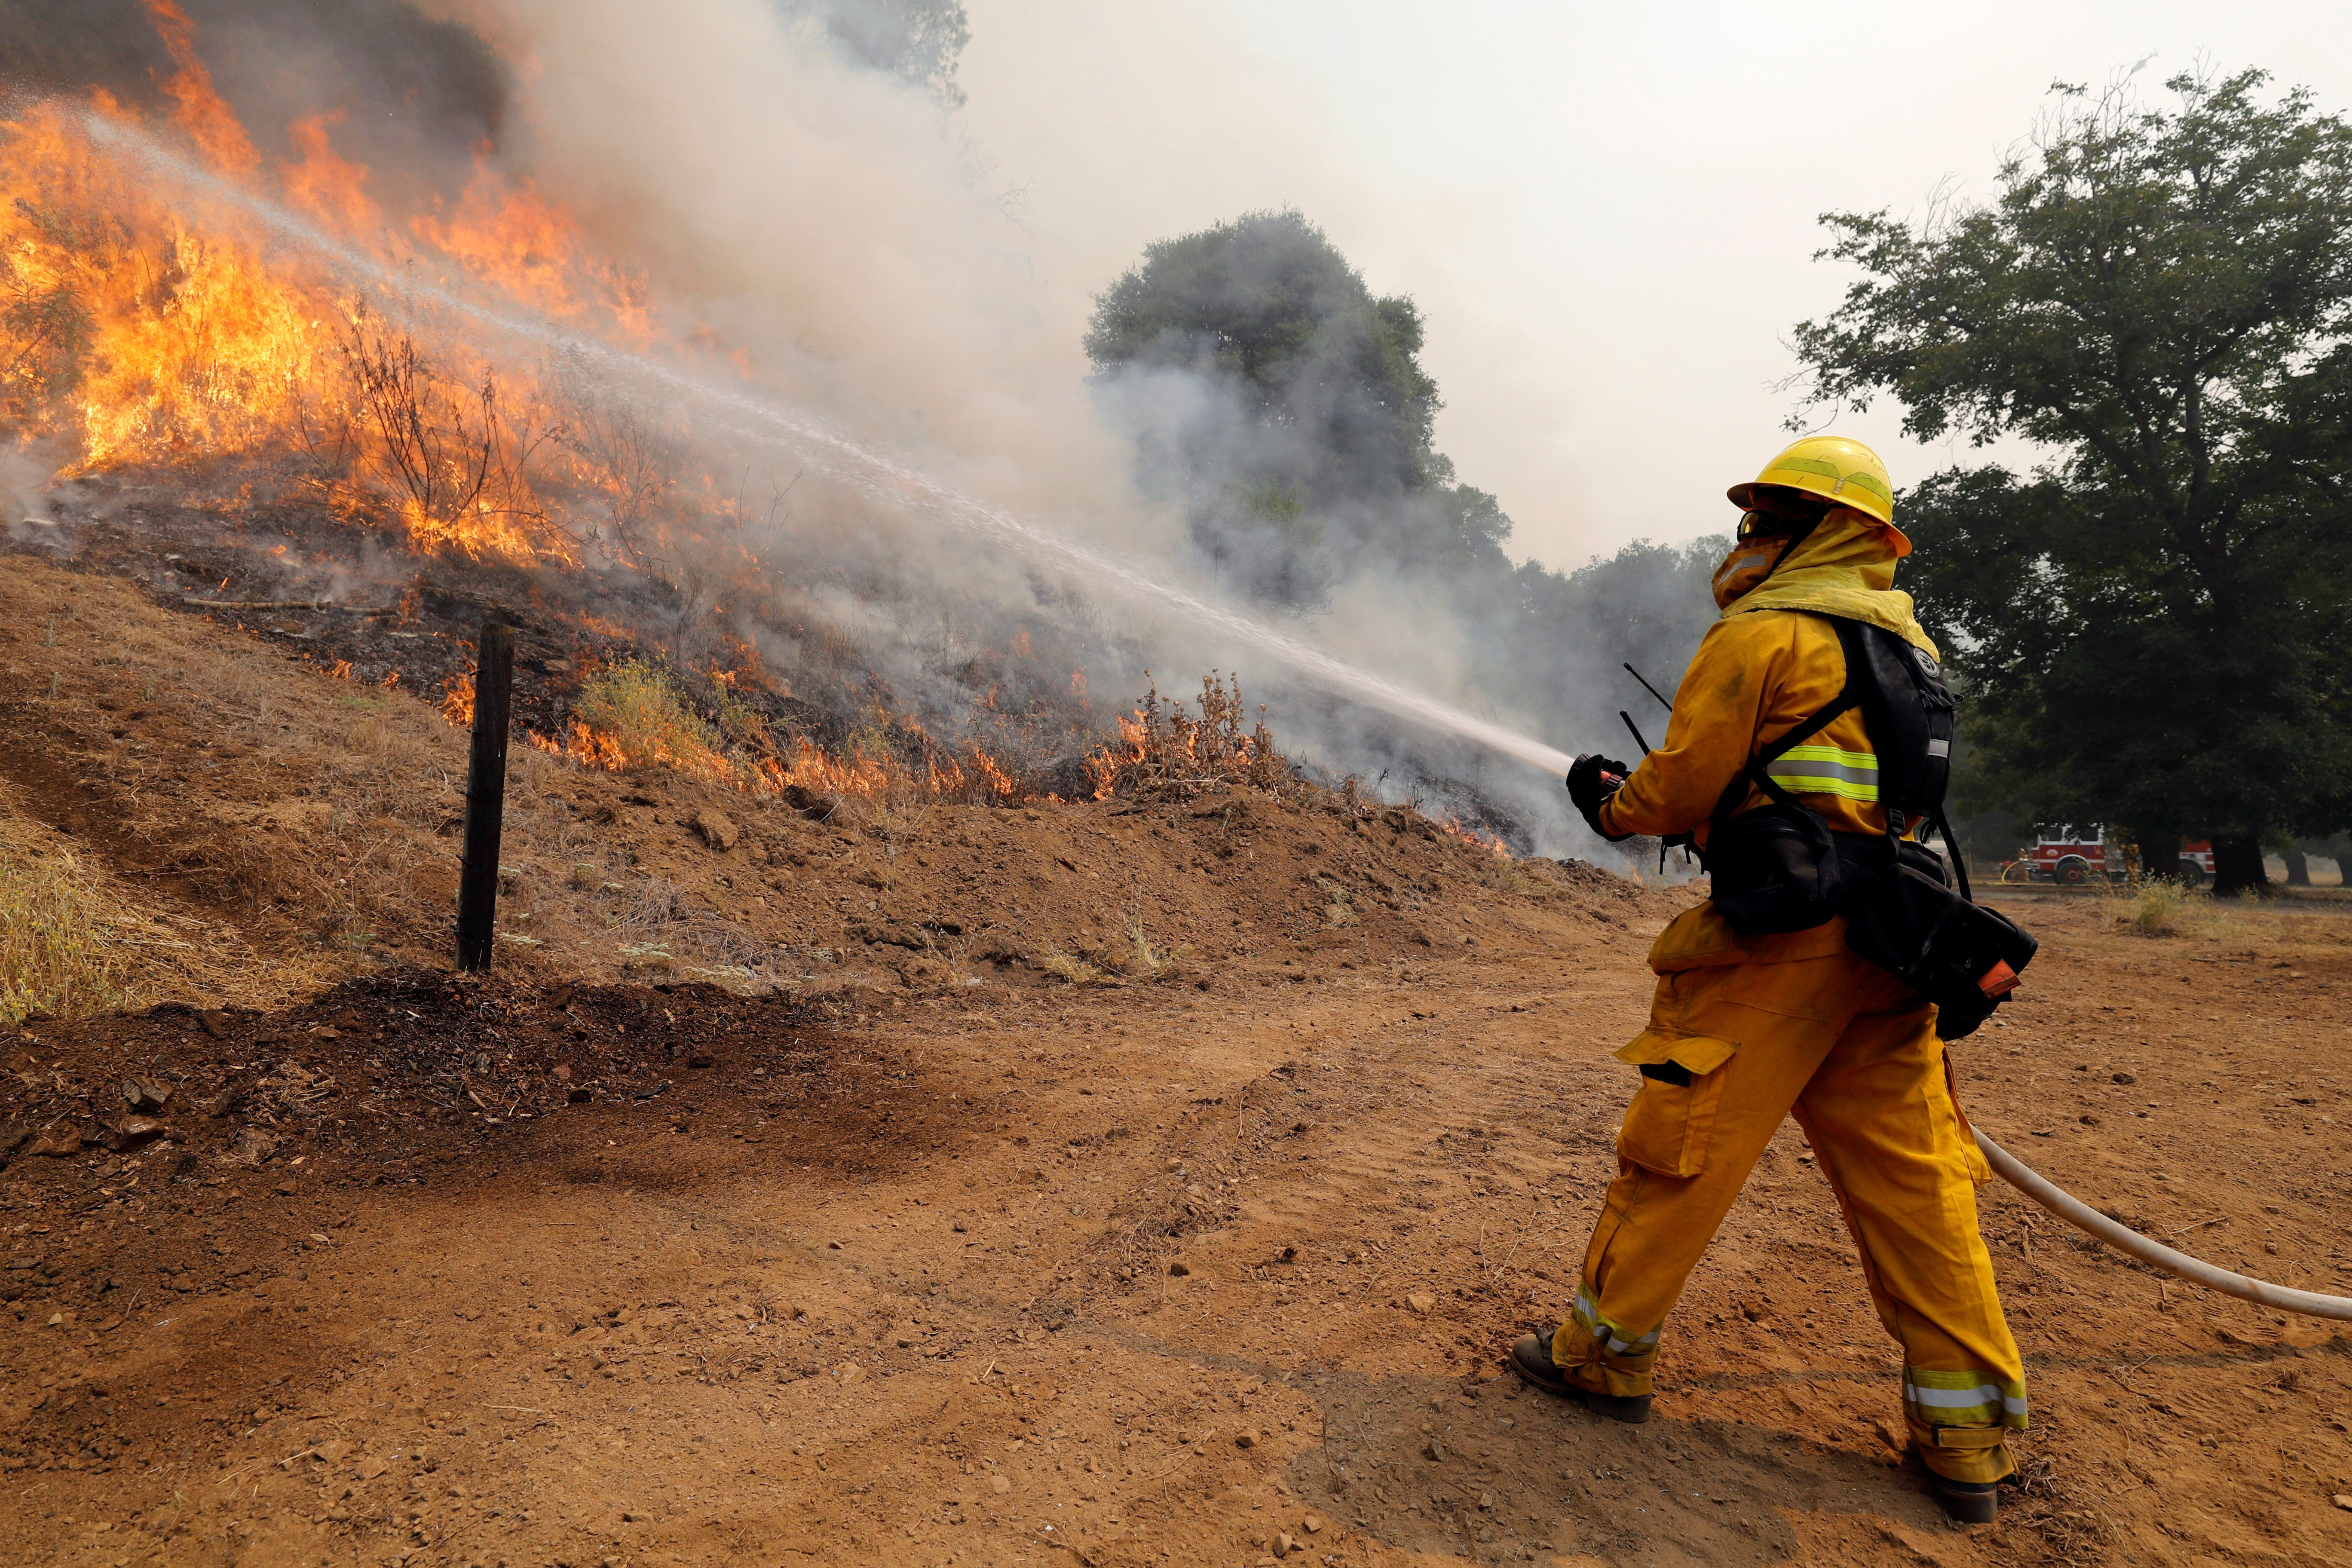 A firefighter uses a hose to knock down flames from the Ranch fire (part of the Mendocino Complex fire) north of Upper Lake,